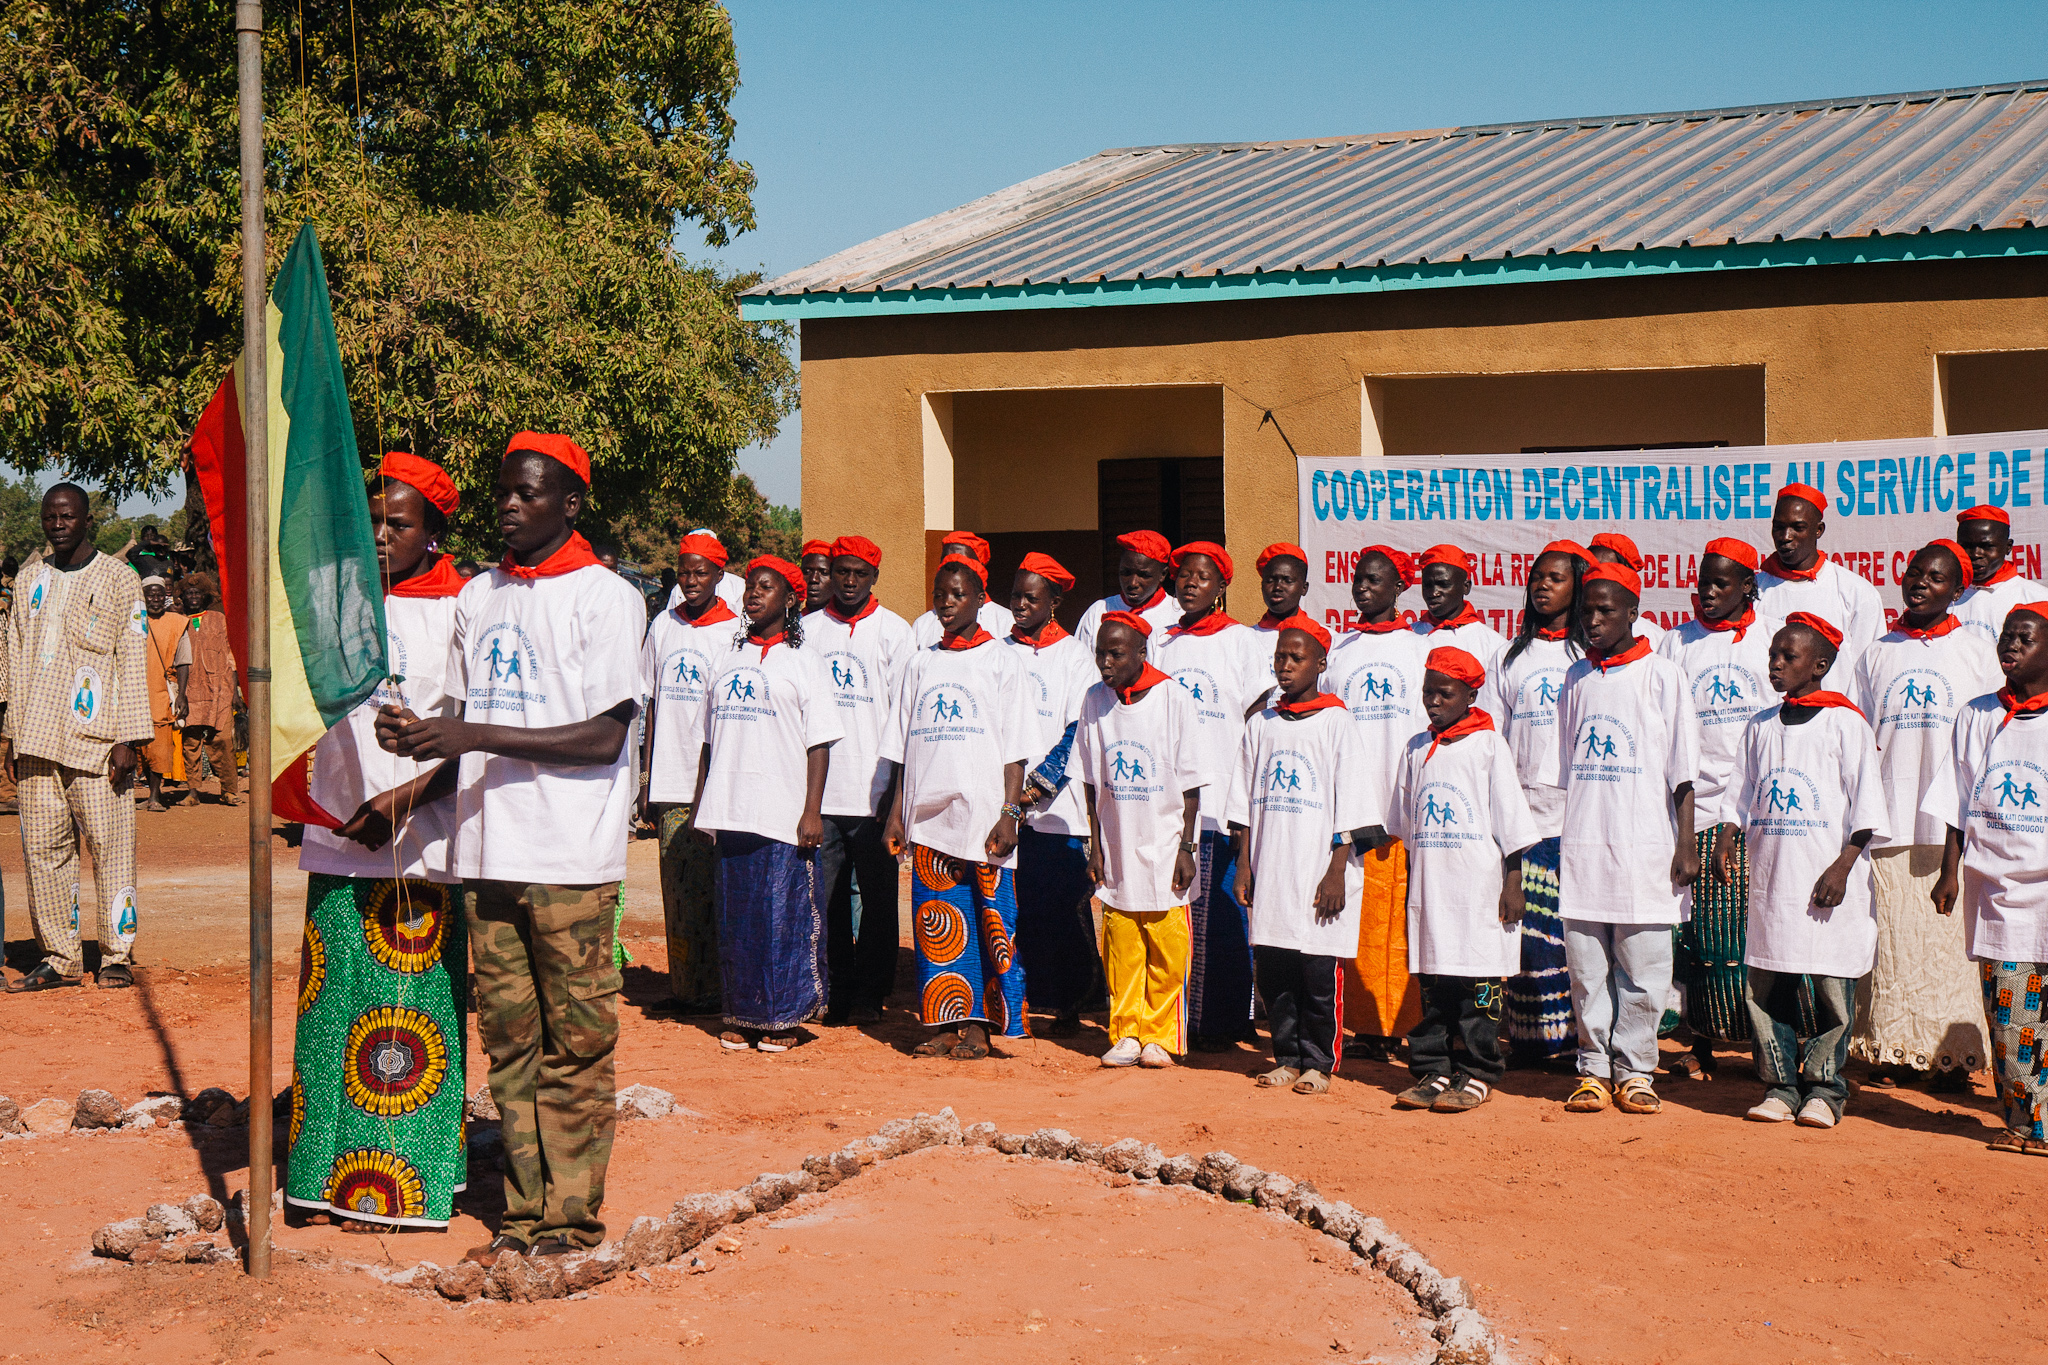 During their school dedication ceremony, Beneko students raise the Malian flag while singing the national anthem.